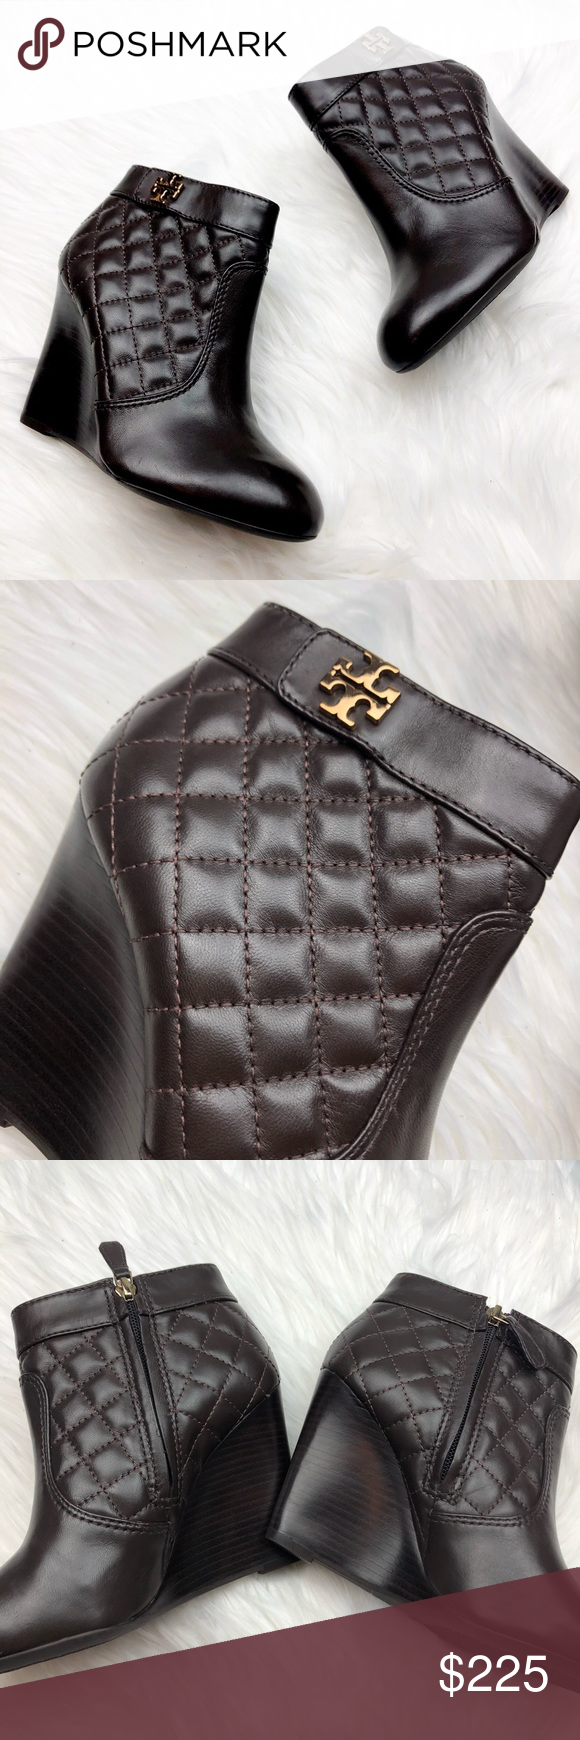 16363a335579 New Tory Burch Leila Brown Quilted Wedge Booties Brand new and never worn.  Size 7. Quilted leather. Tory logo in gold. Interior zip. Chocolate brown.